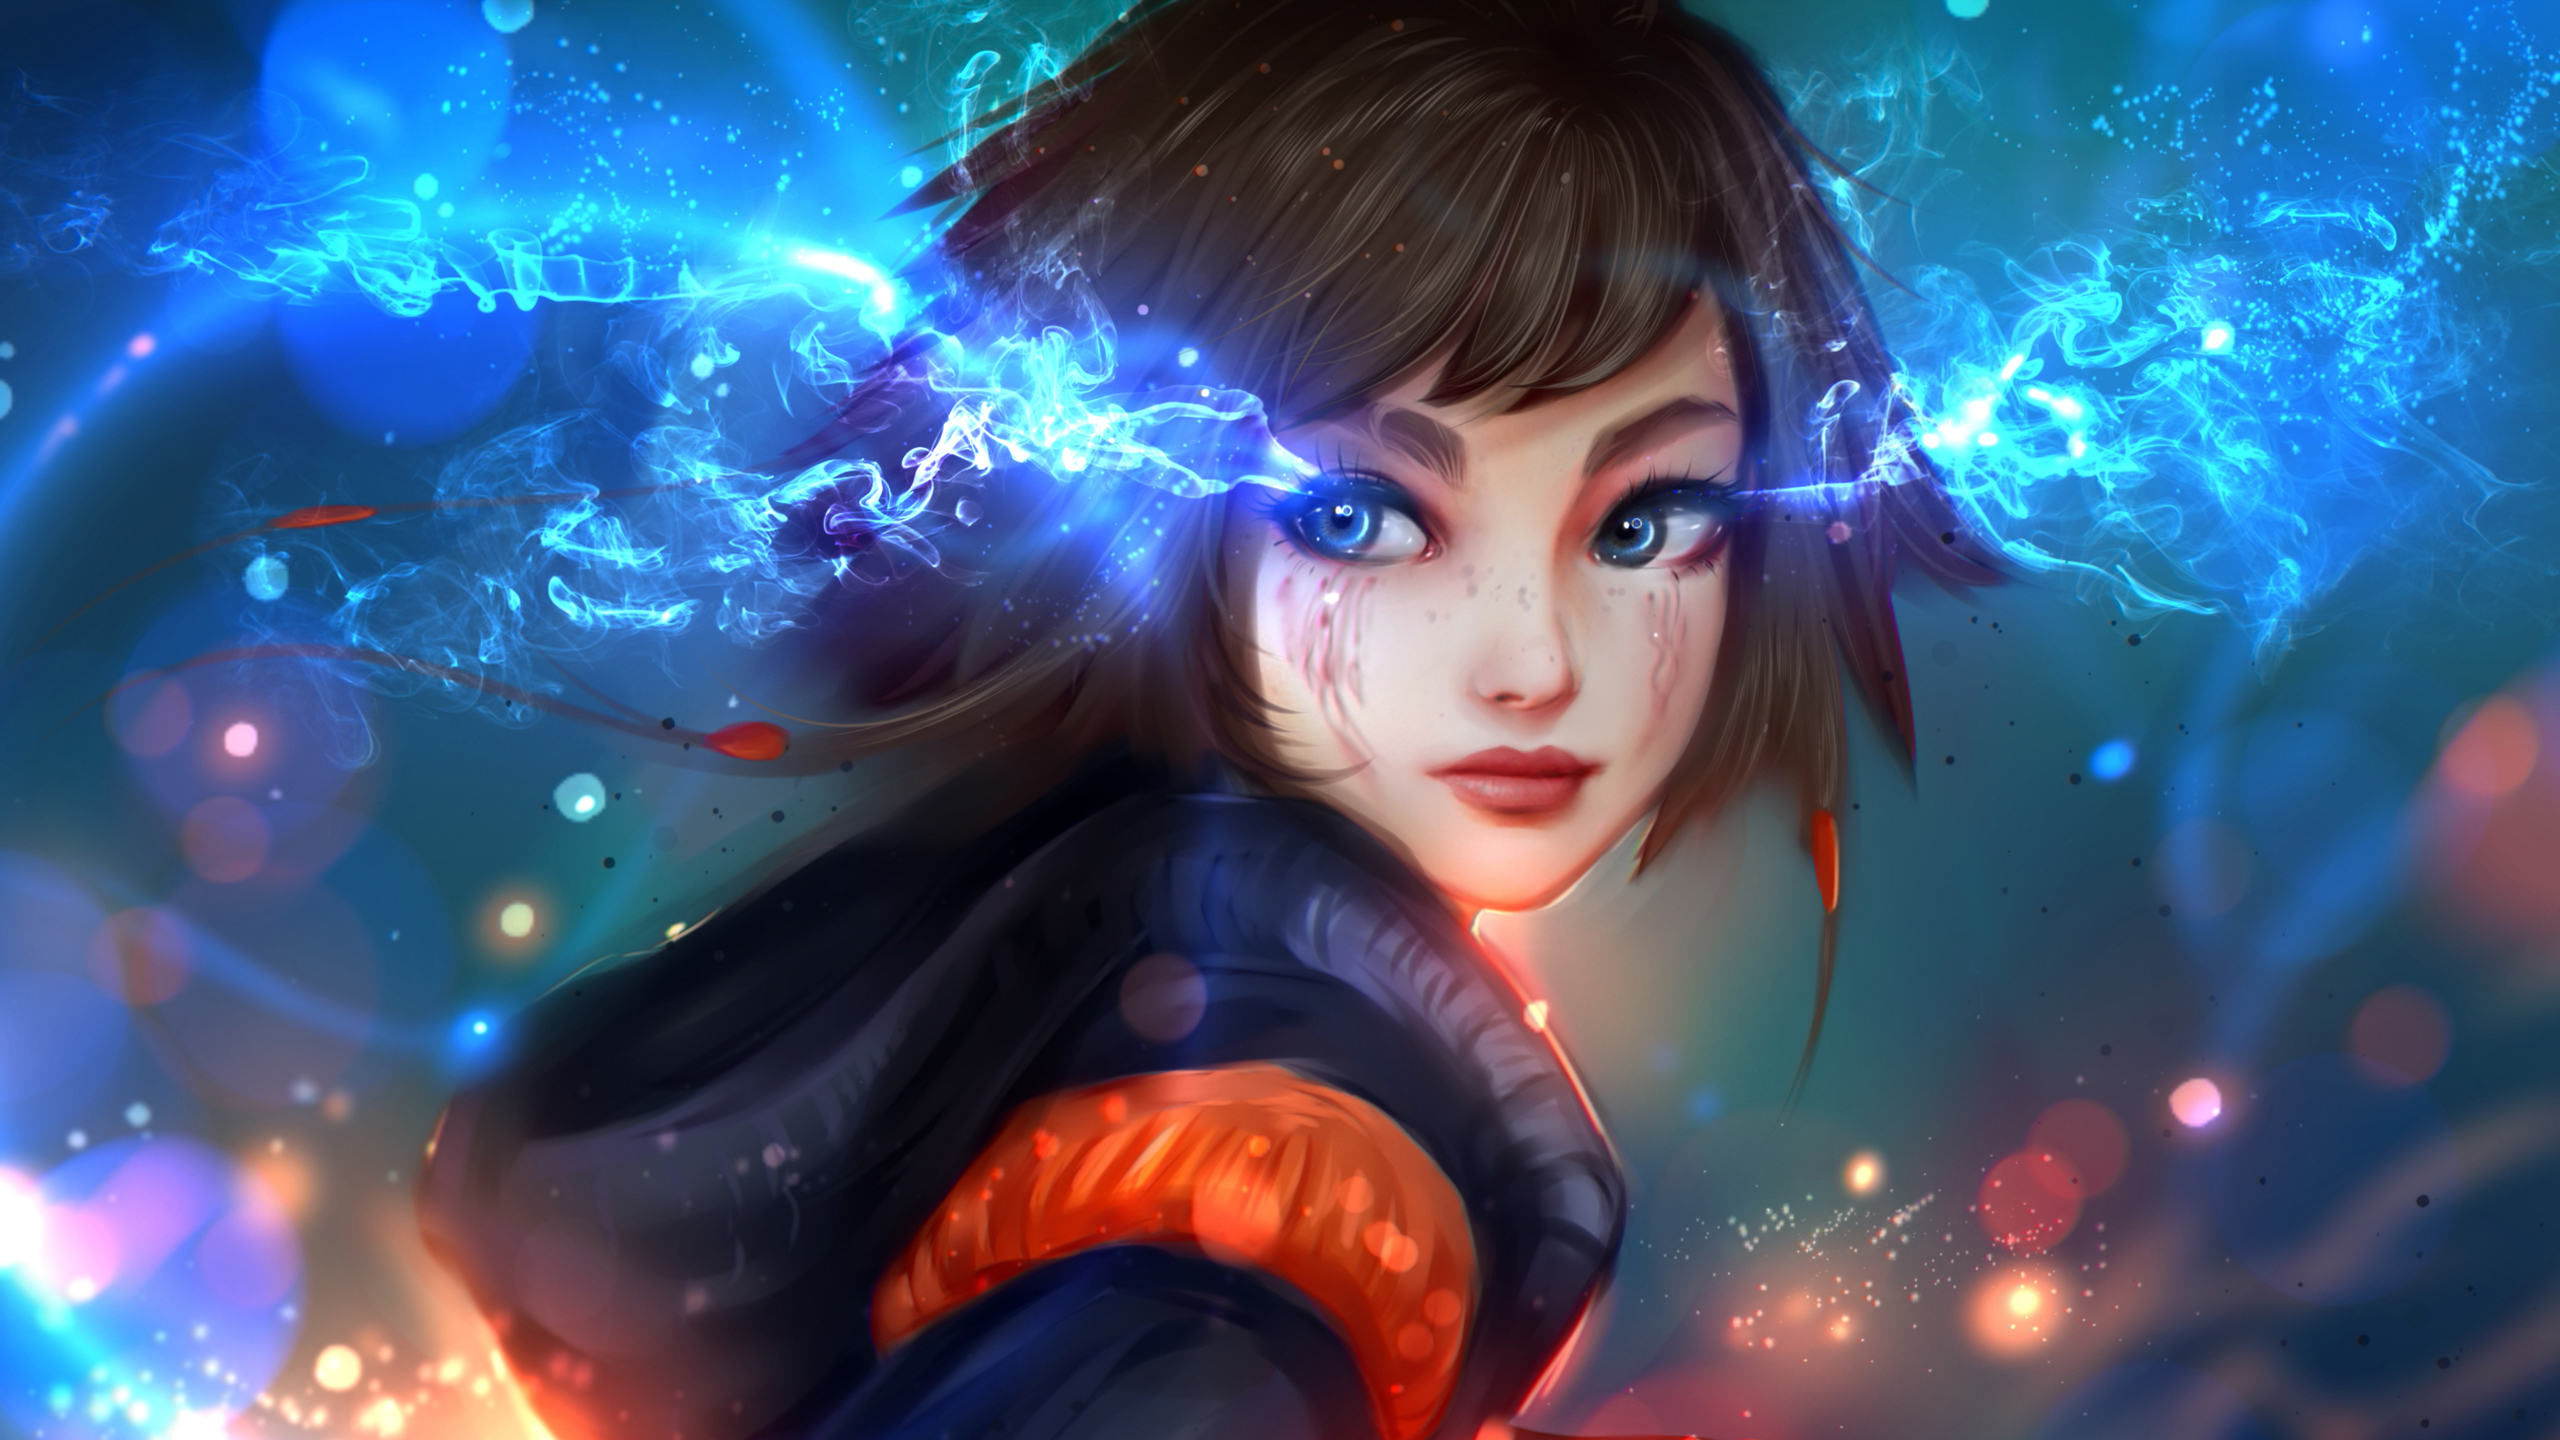 blue eyed fantasy girl wallpapers | hd wallpapers